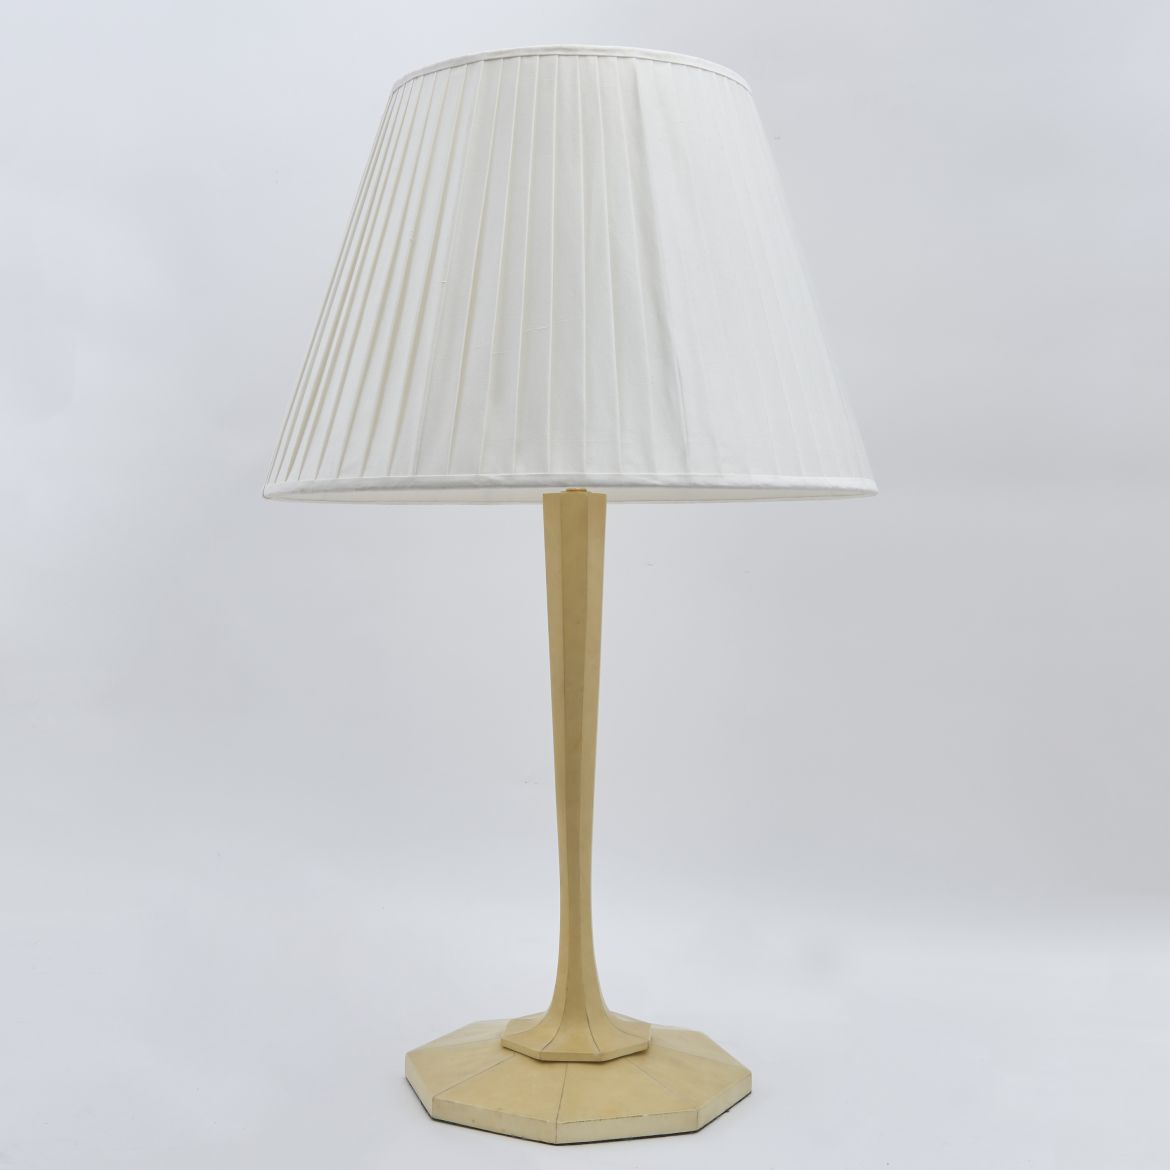 Japanese Parchment Veneered Lamp